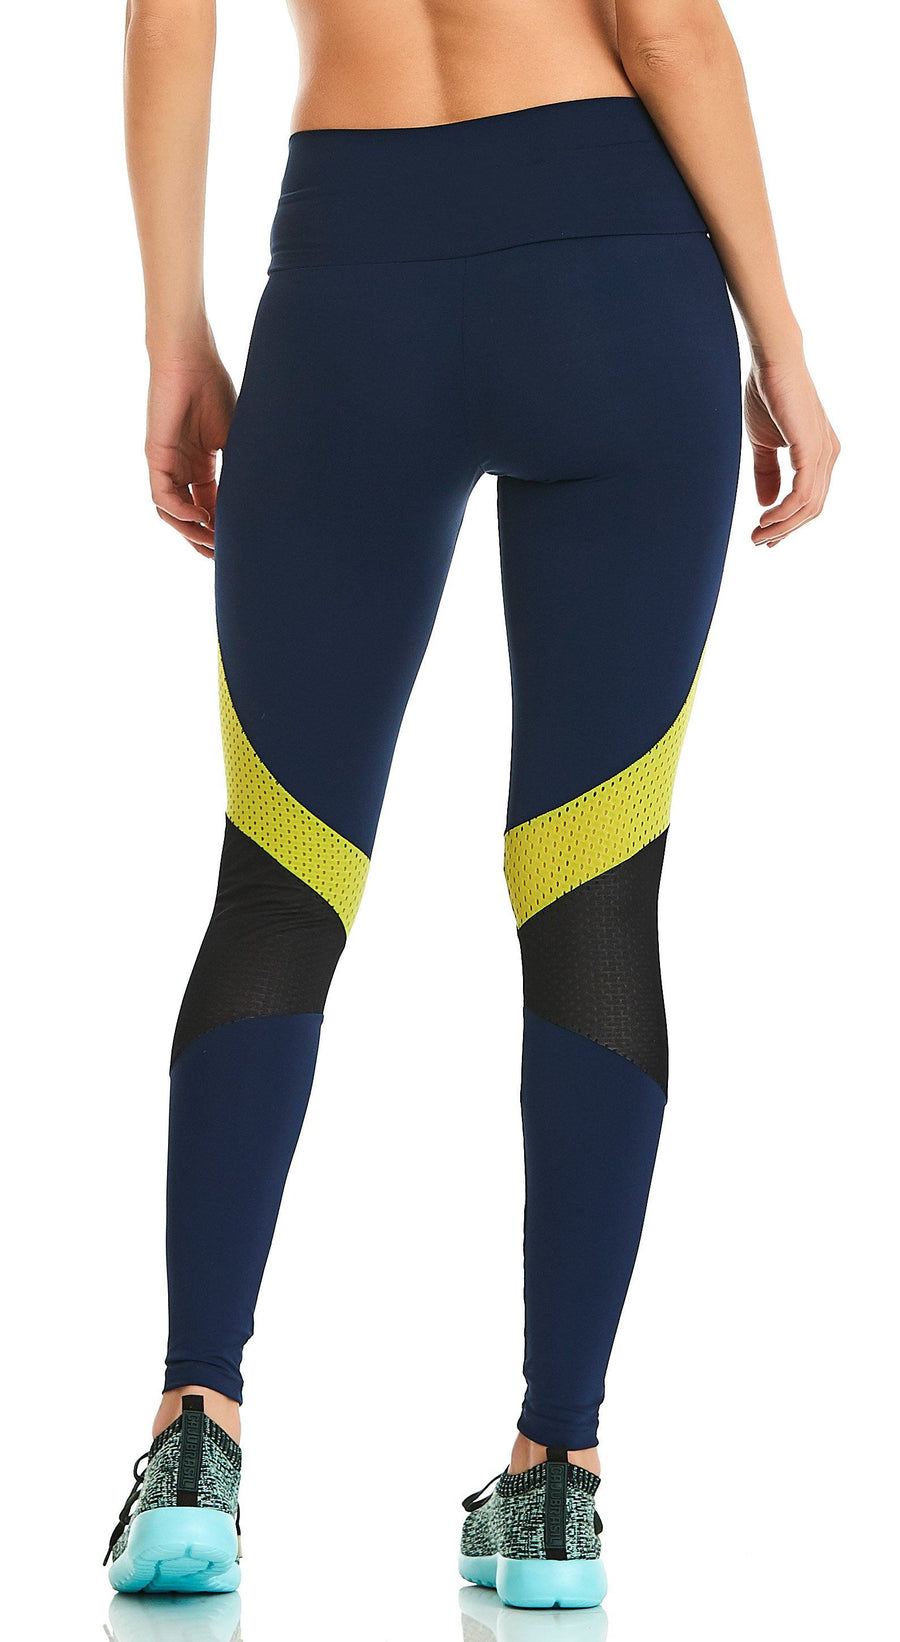 Brazilian Legging - Rock Empower Navy